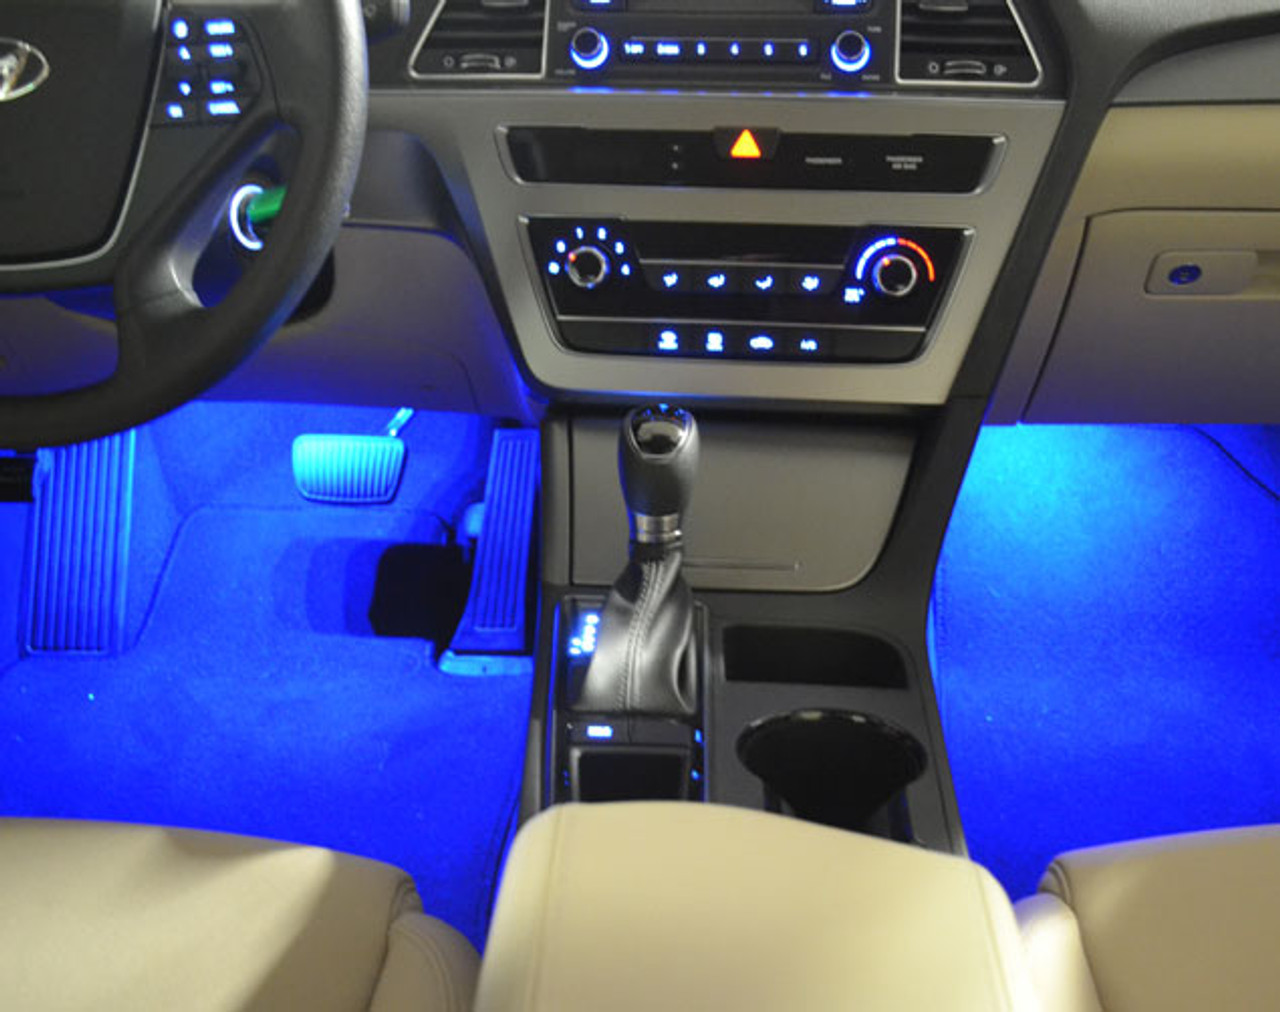 2015 2017 hyundai sonata led interior lighting kit free - 2015 hyundai sonata interior pictures ...